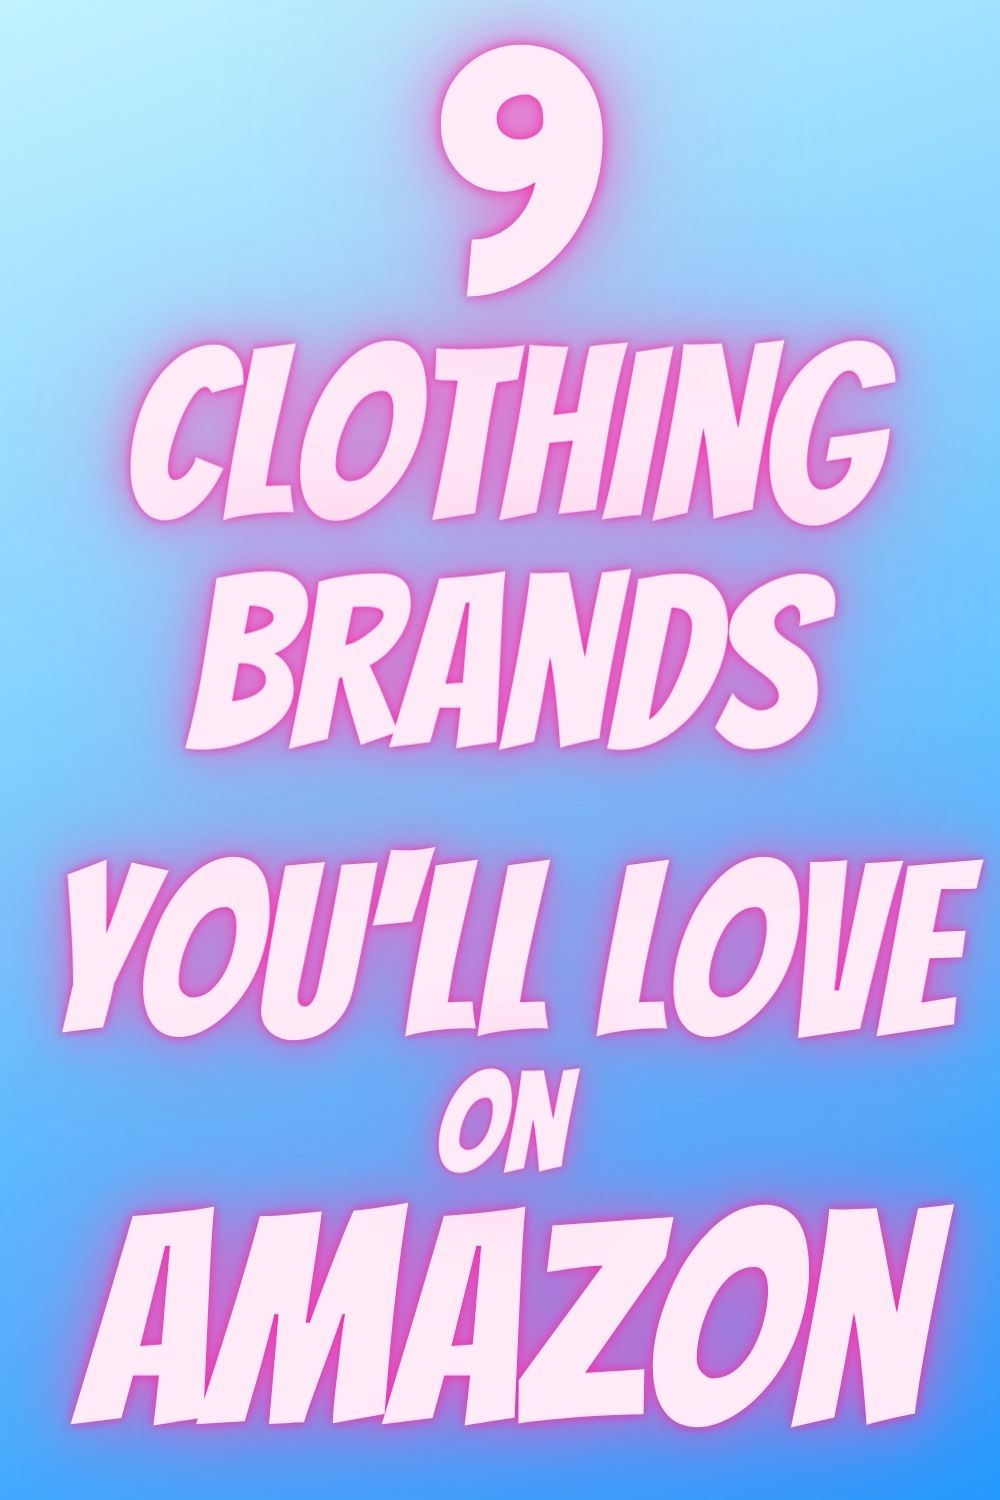 Text overlay on blue background - 9 clothing brands you'll love on Amazon